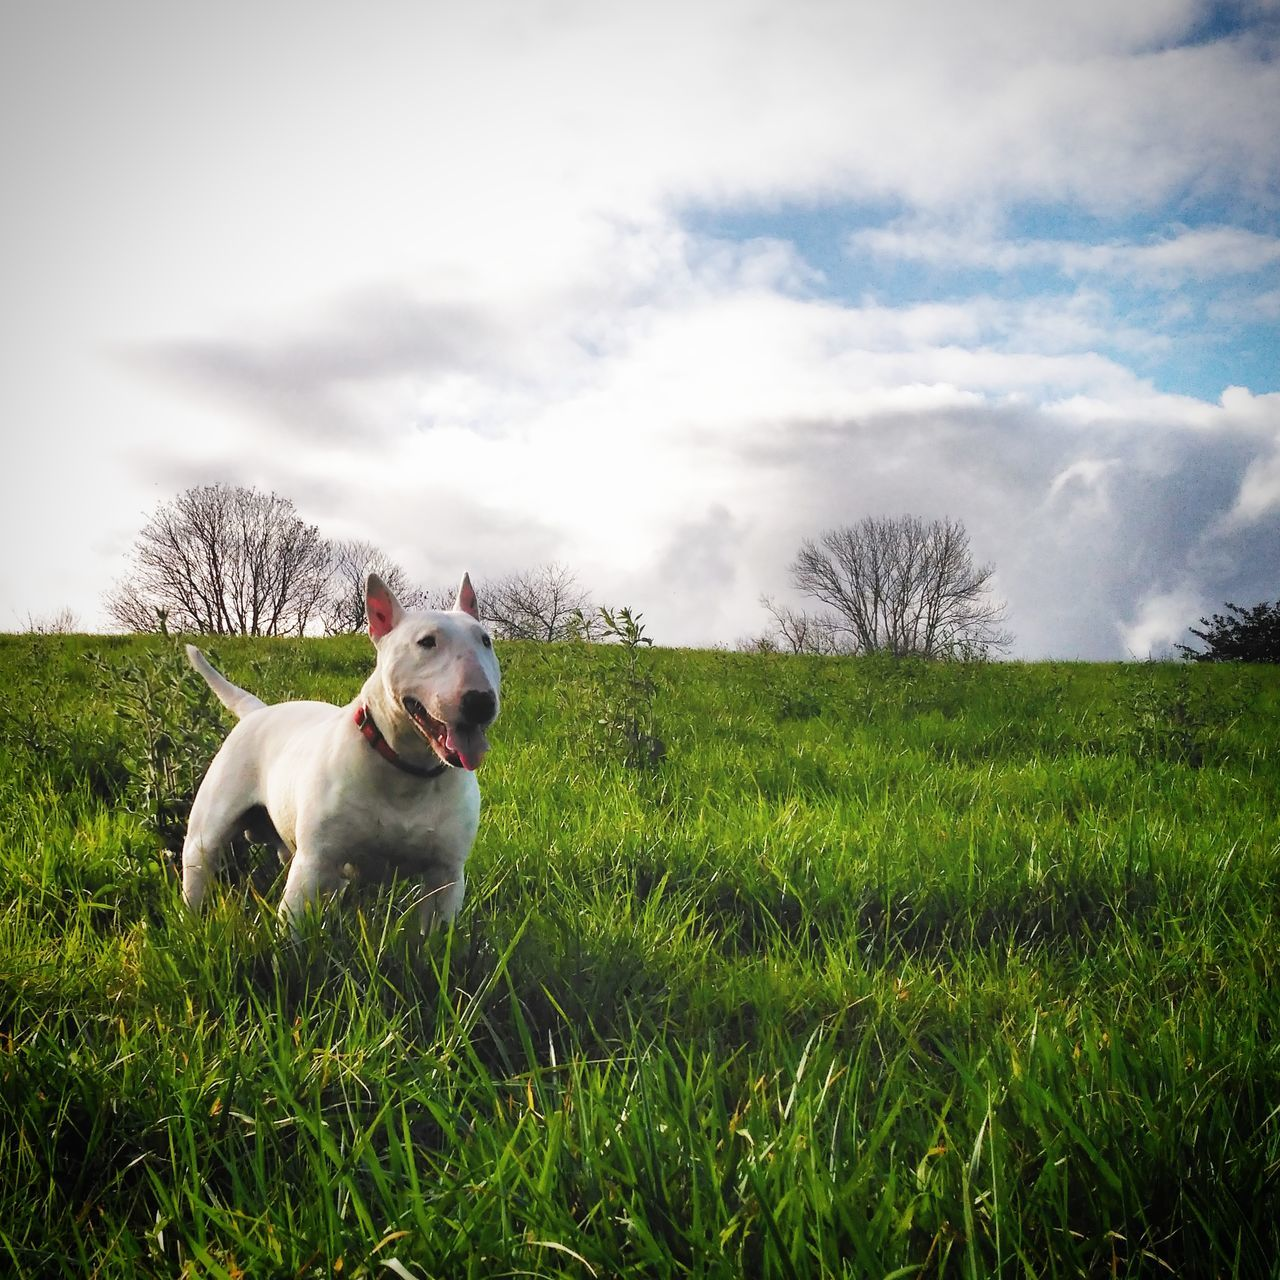 dog, grass, pets, domestic animals, one animal, animal themes, field, cloud - sky, sky, mammal, nature, growth, outdoors, green color, day, no people, tree